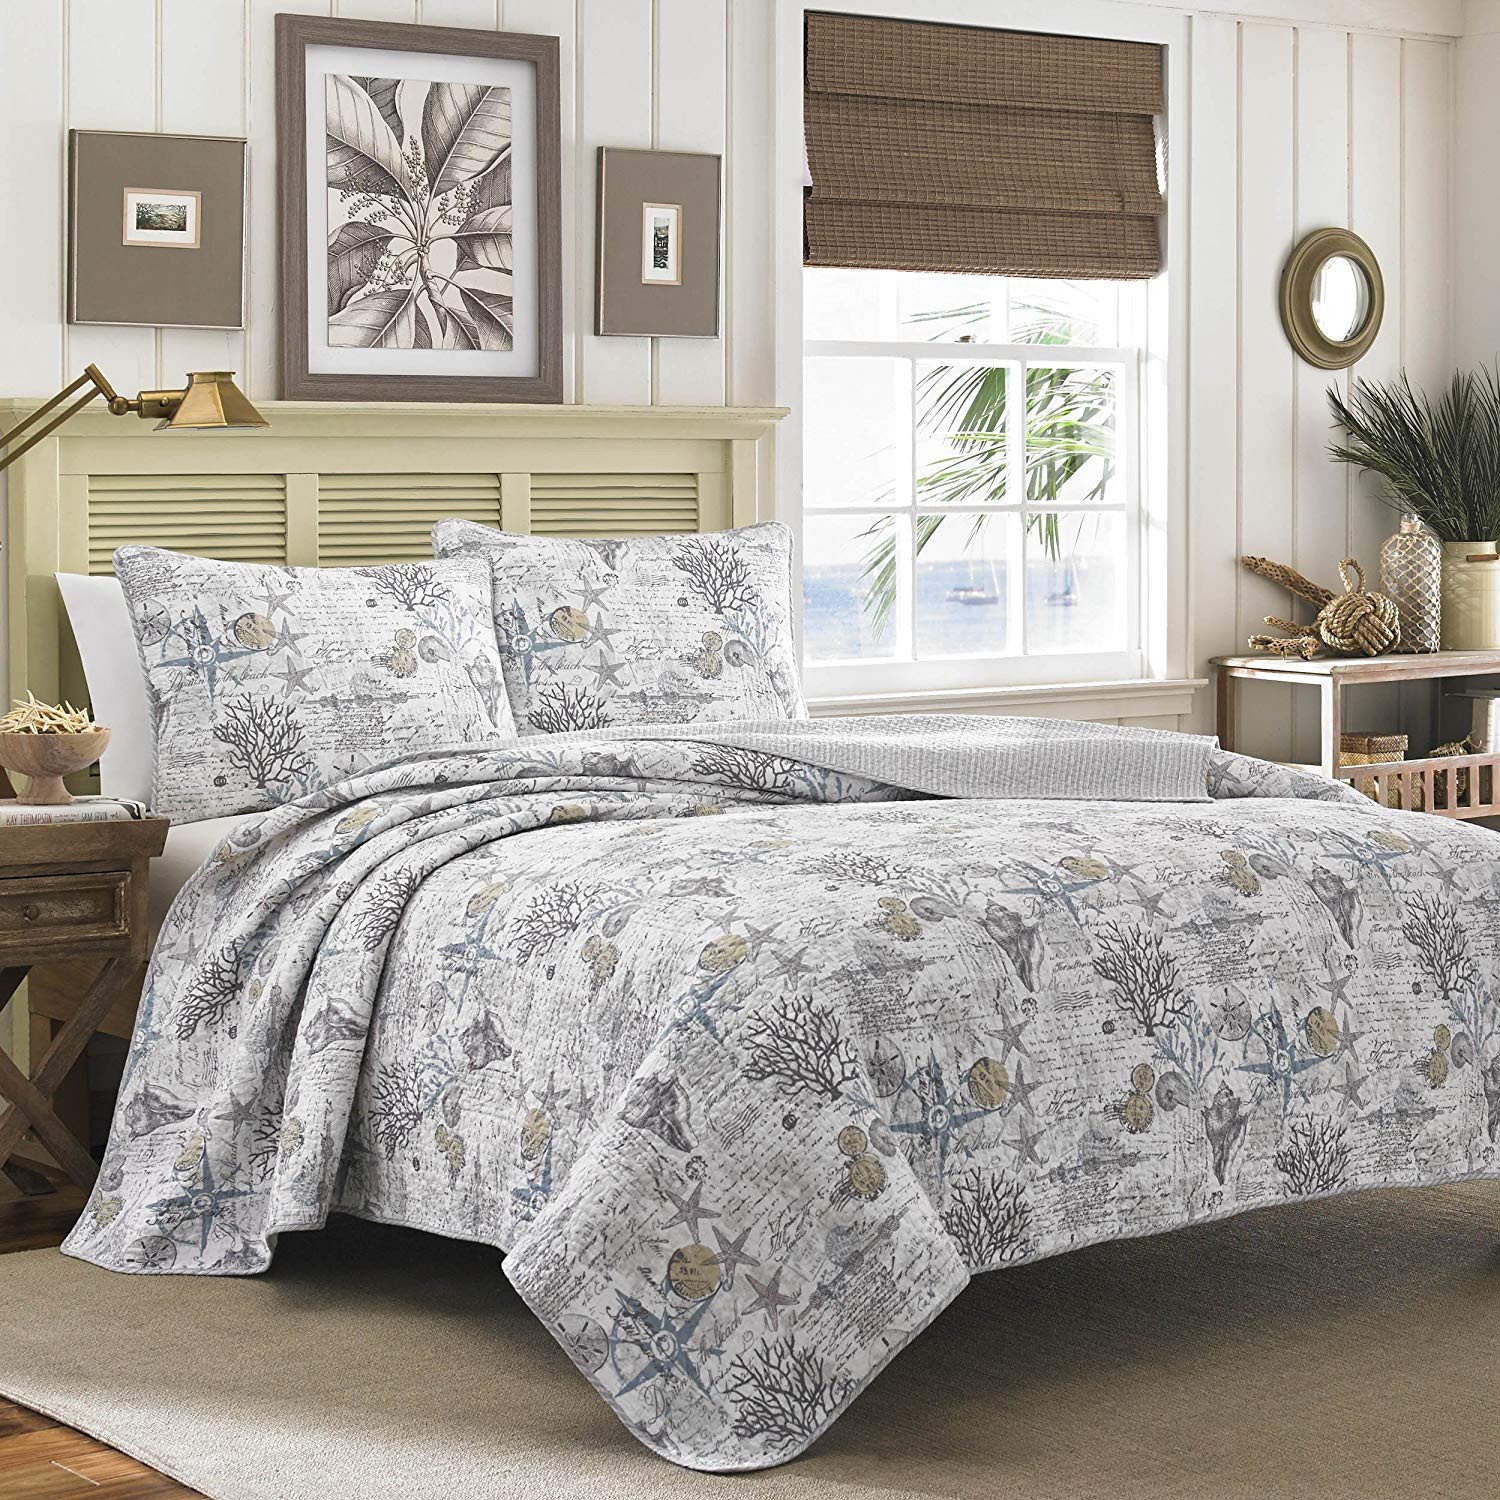 Tommy Bahama Bedroom Set Unique tommy Bahama Quilt Set Full Queen Beach Bliss